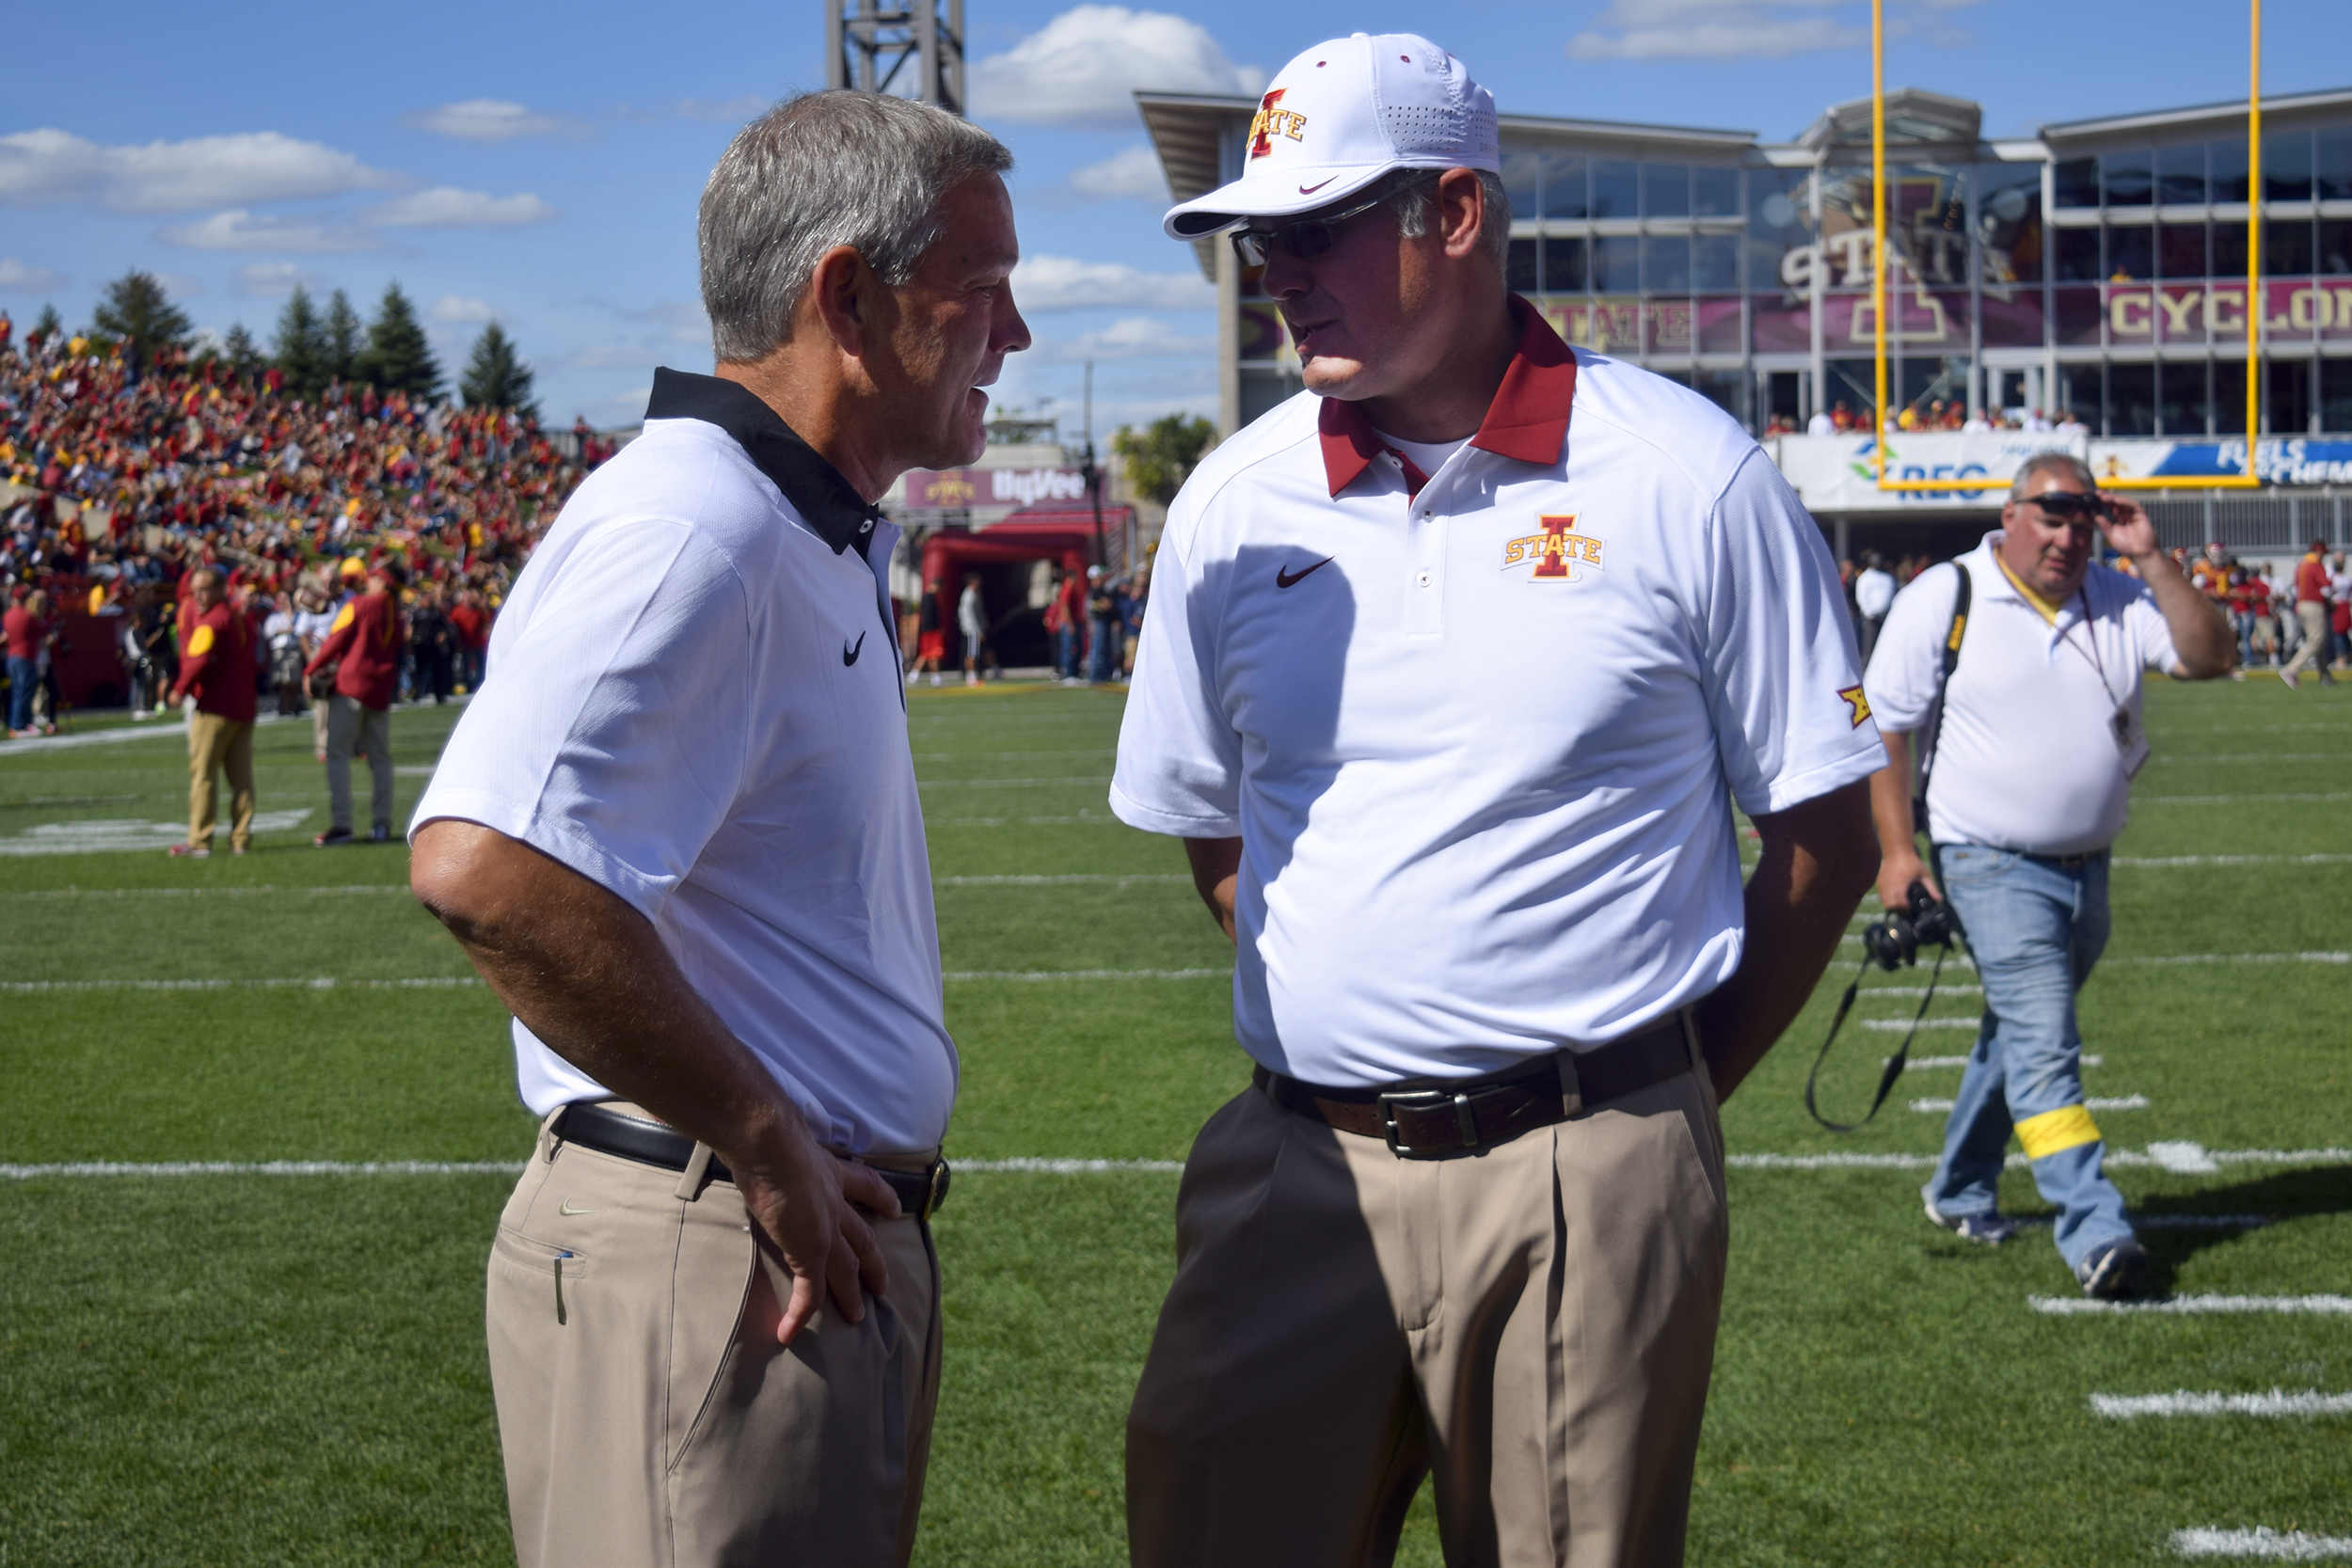 Kirk Ferentz (left) and Paul Rhoads talk briefly on the field before the Iowa vs. Iowa State game at Jack Trice Stadium in 2015. Photo by: Ryan Young/Iowa State Daily